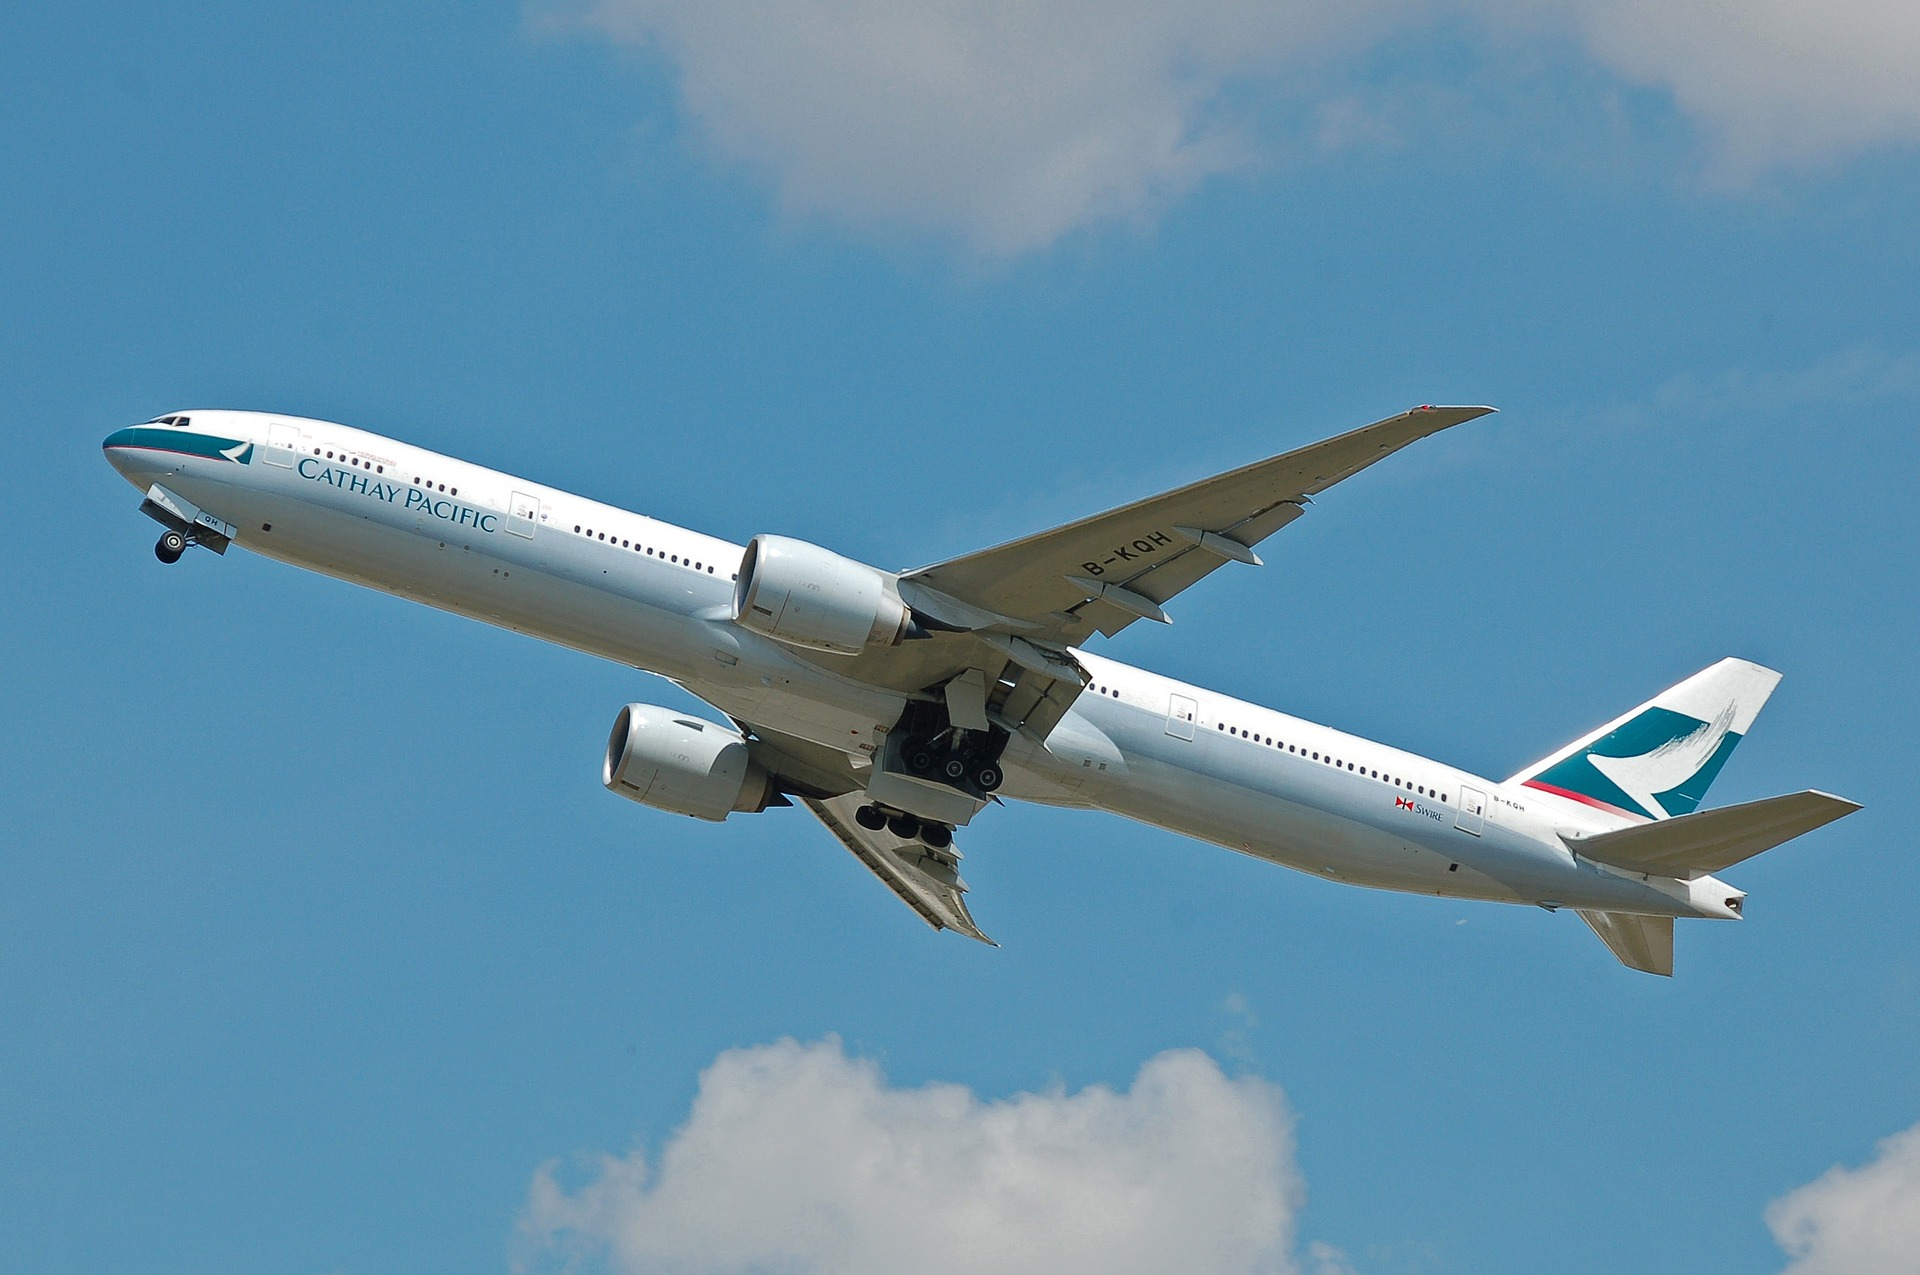 cathay pacific airplane